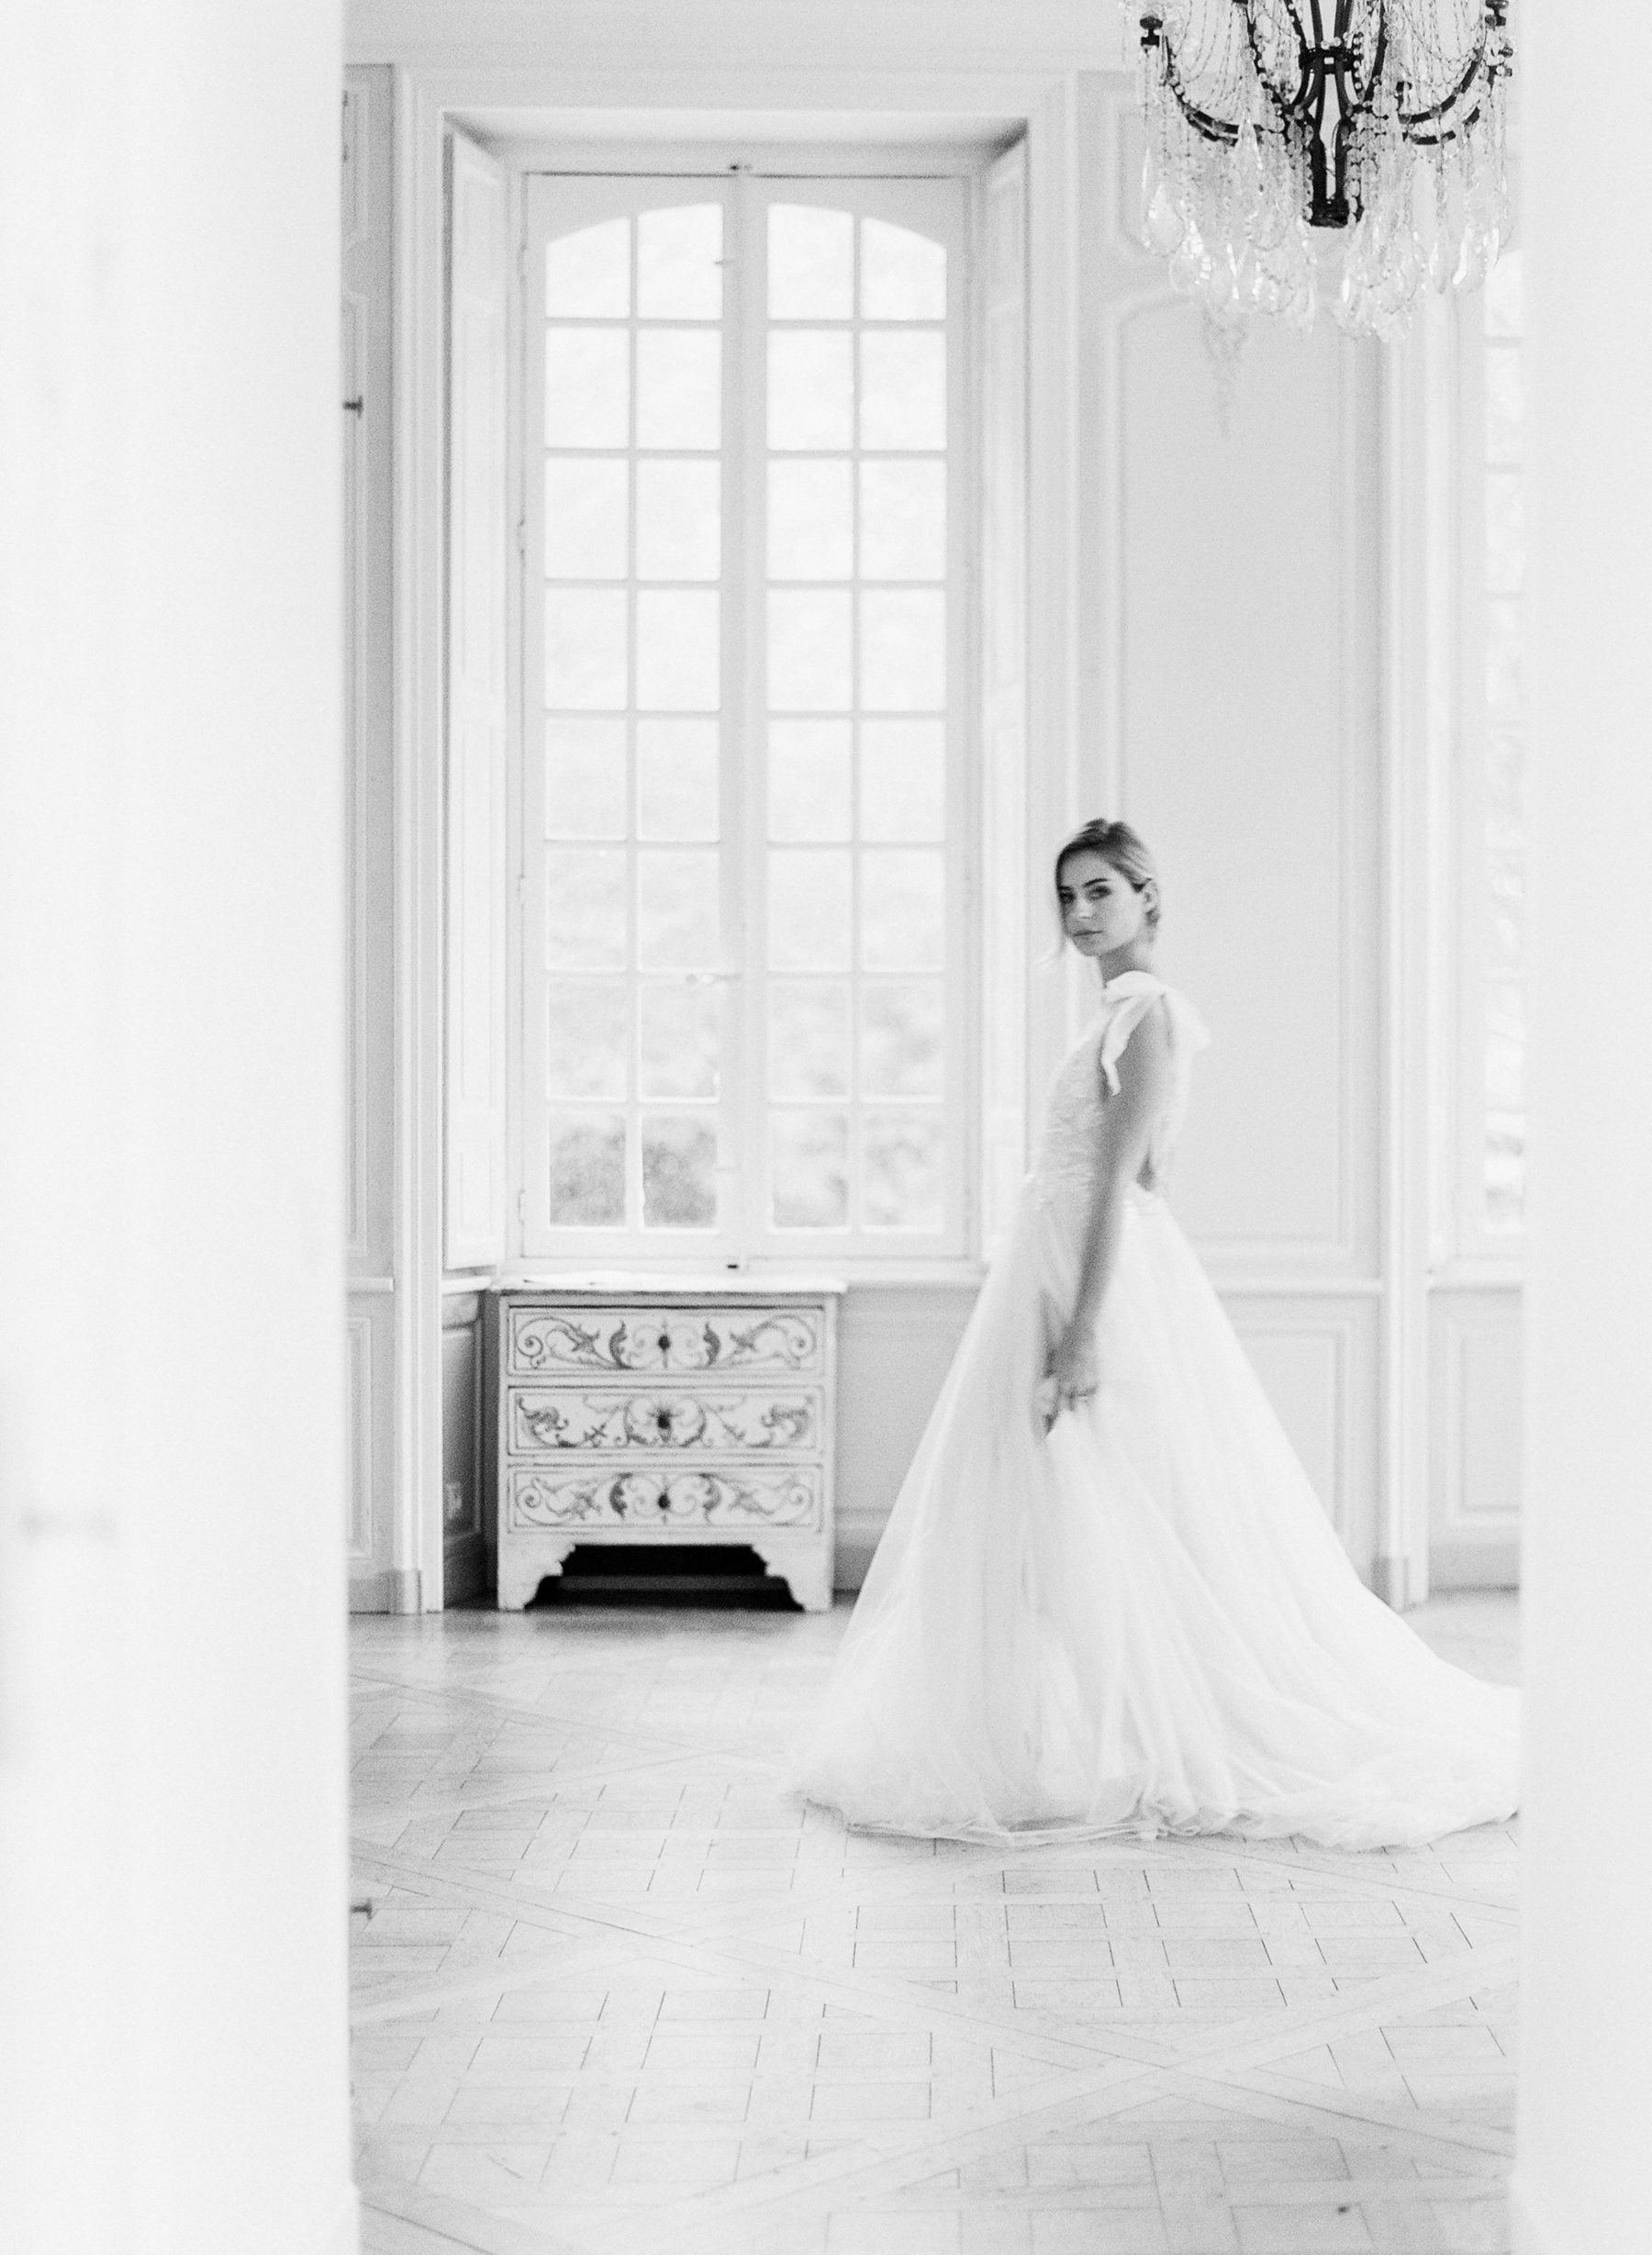 Les Grands Moments Destination Wedding Planner across France produces refined wedding for a discerning clientele